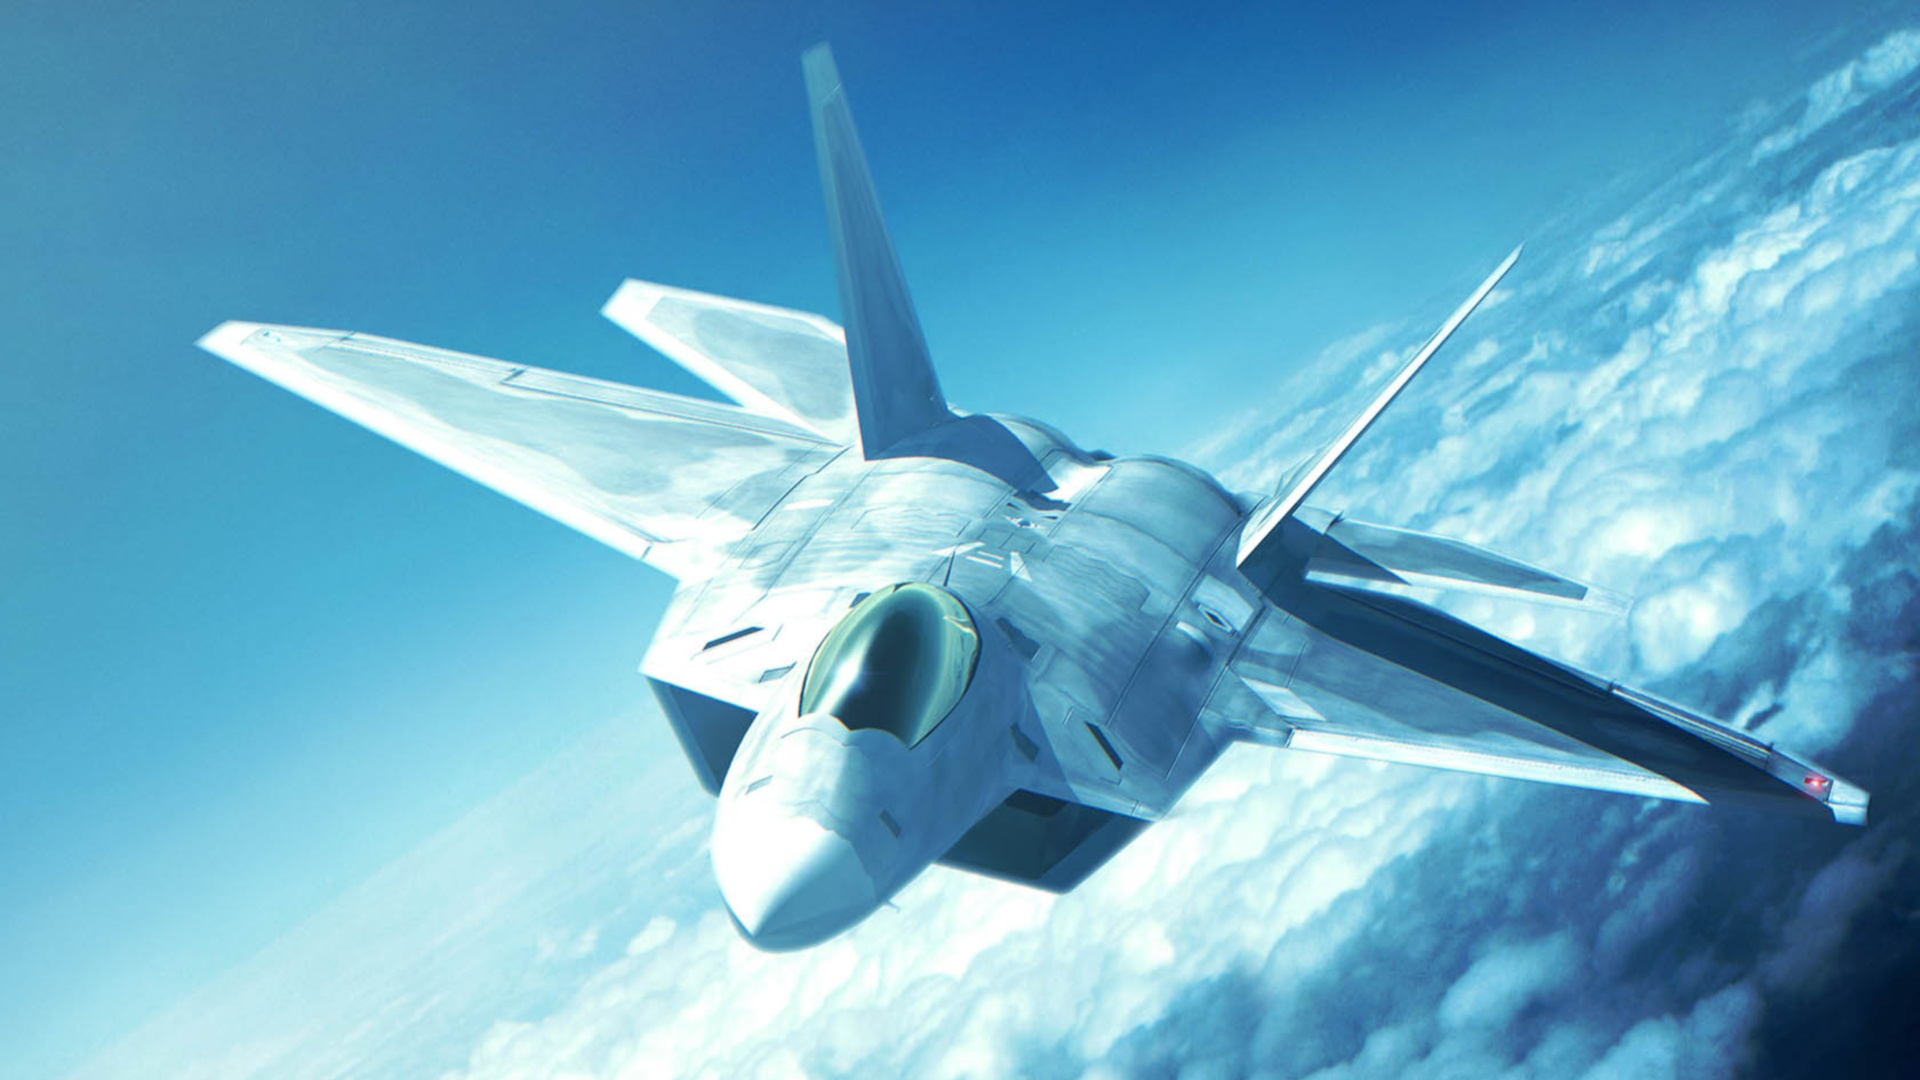 Ace Combat Wallpapers, Pictures, Images